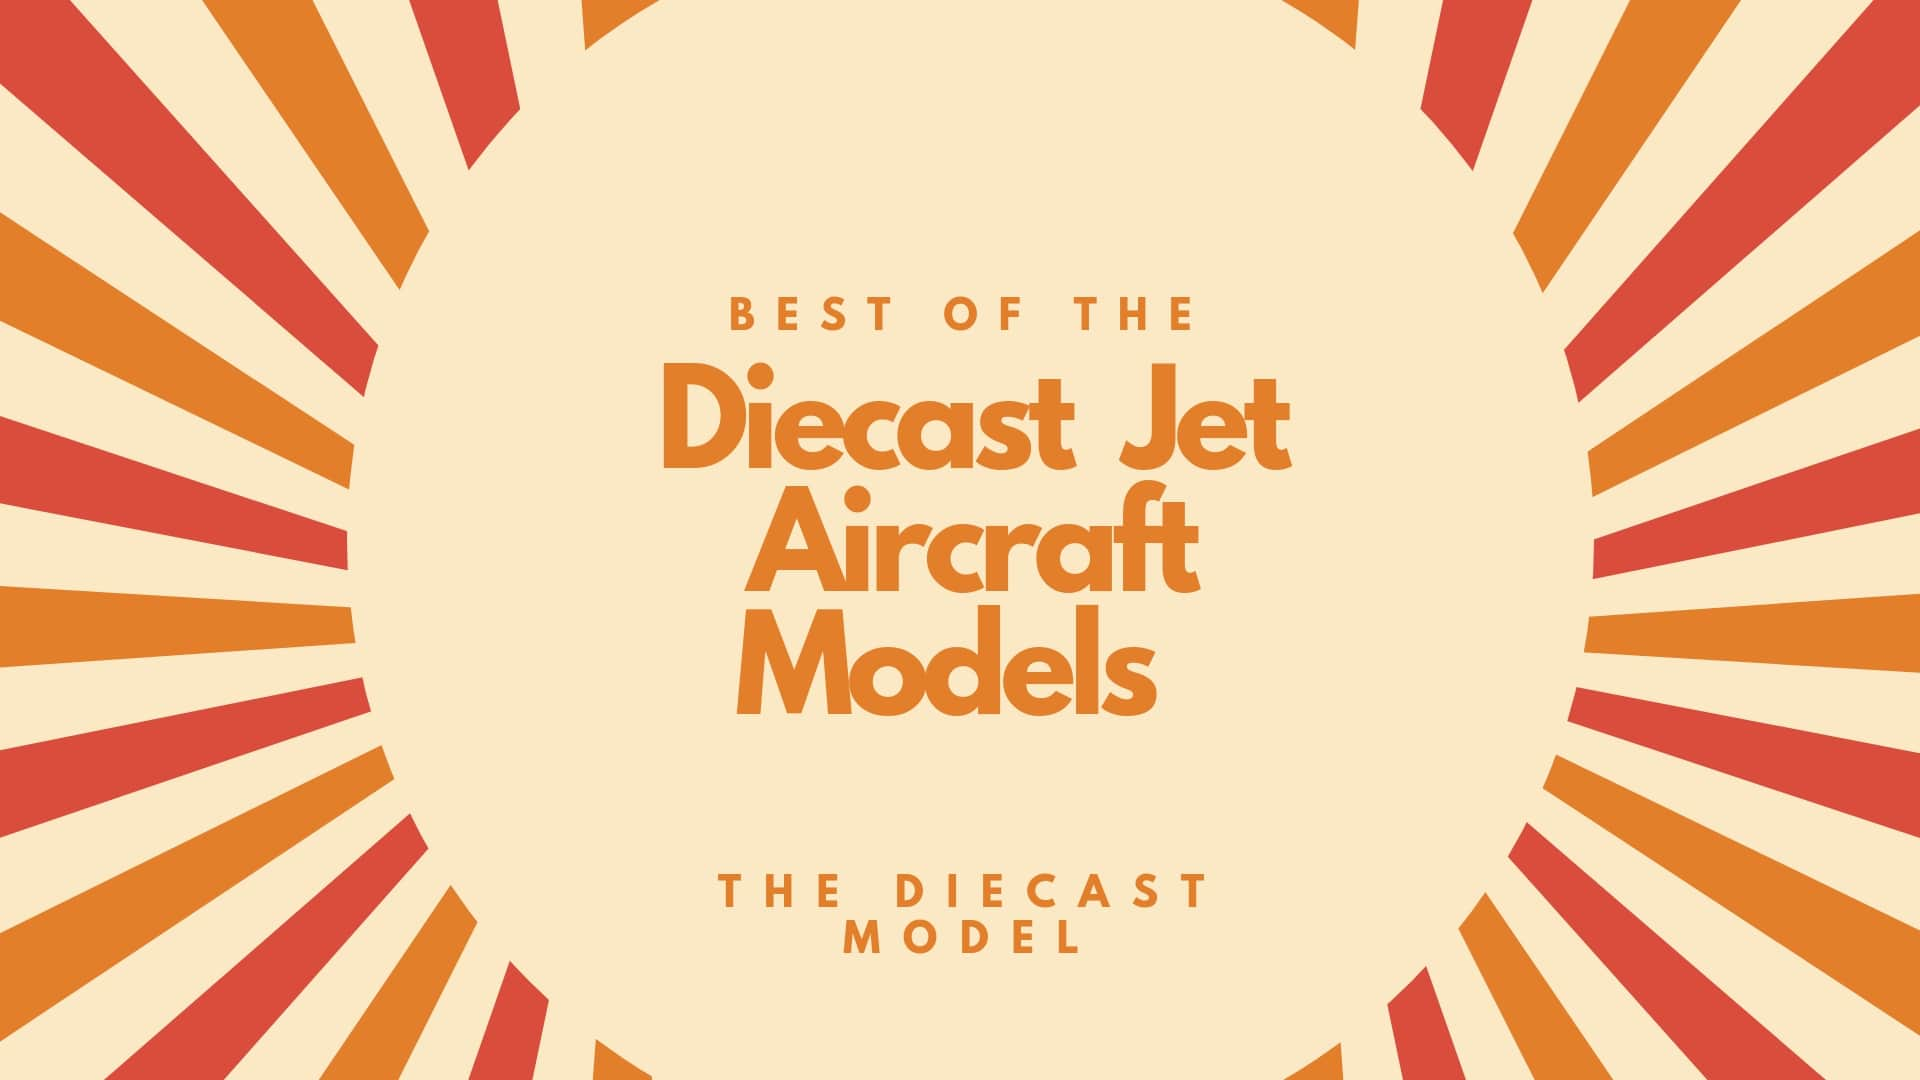 Best Diecast Aircraft Models - Jet